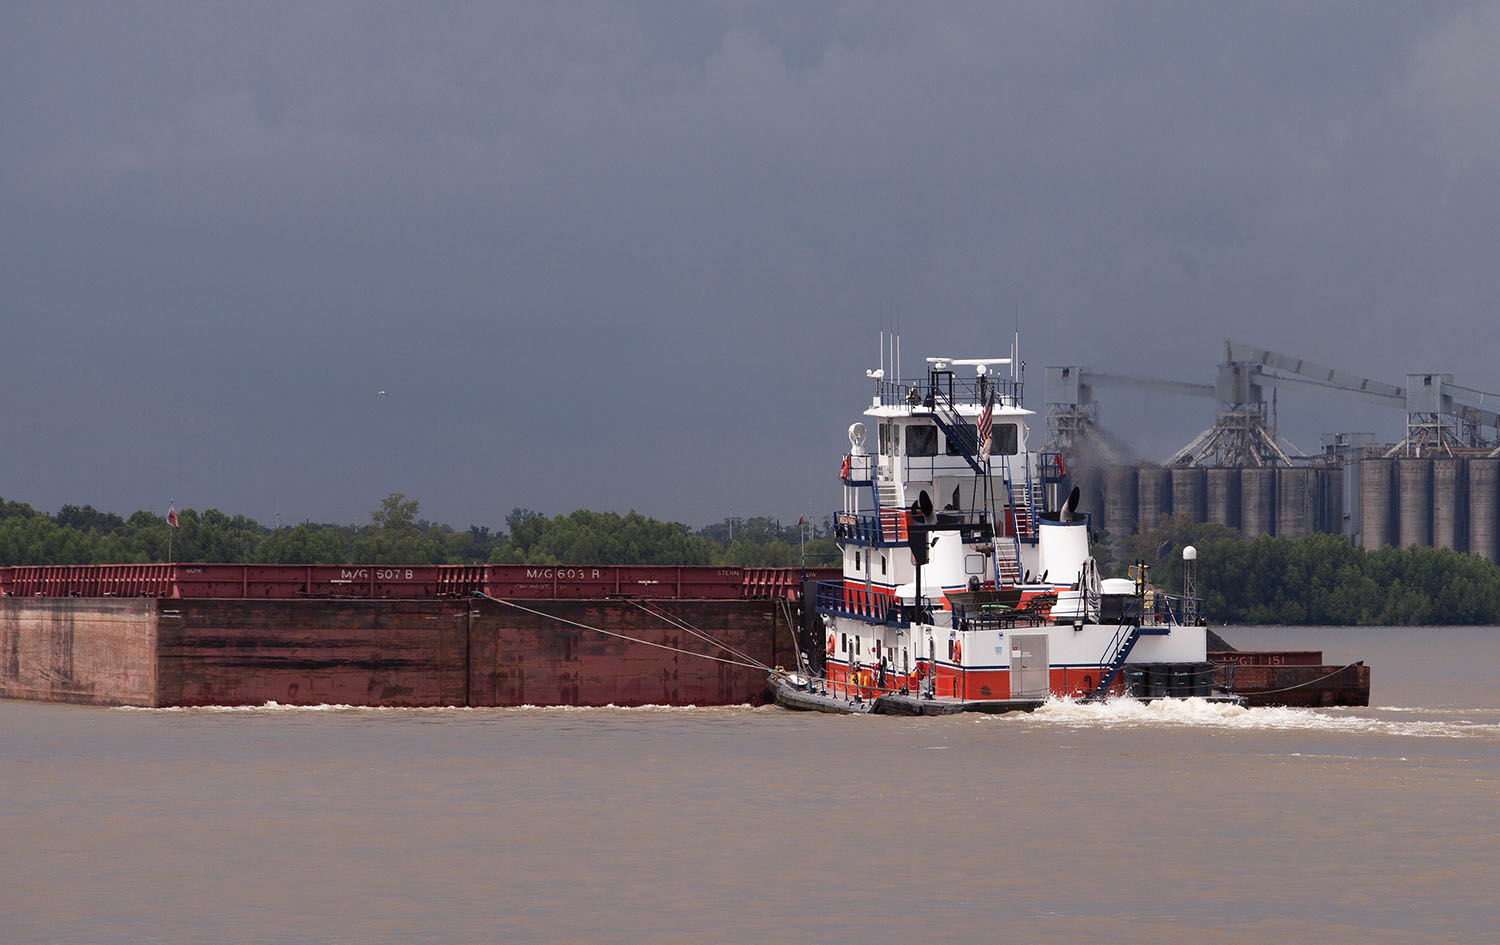 The mv. American Pharoah, part of Turn Service's fleet of towboats, pushes a tow of open hopper barges in the New Orleans area. (Photo by Frank McCormack)